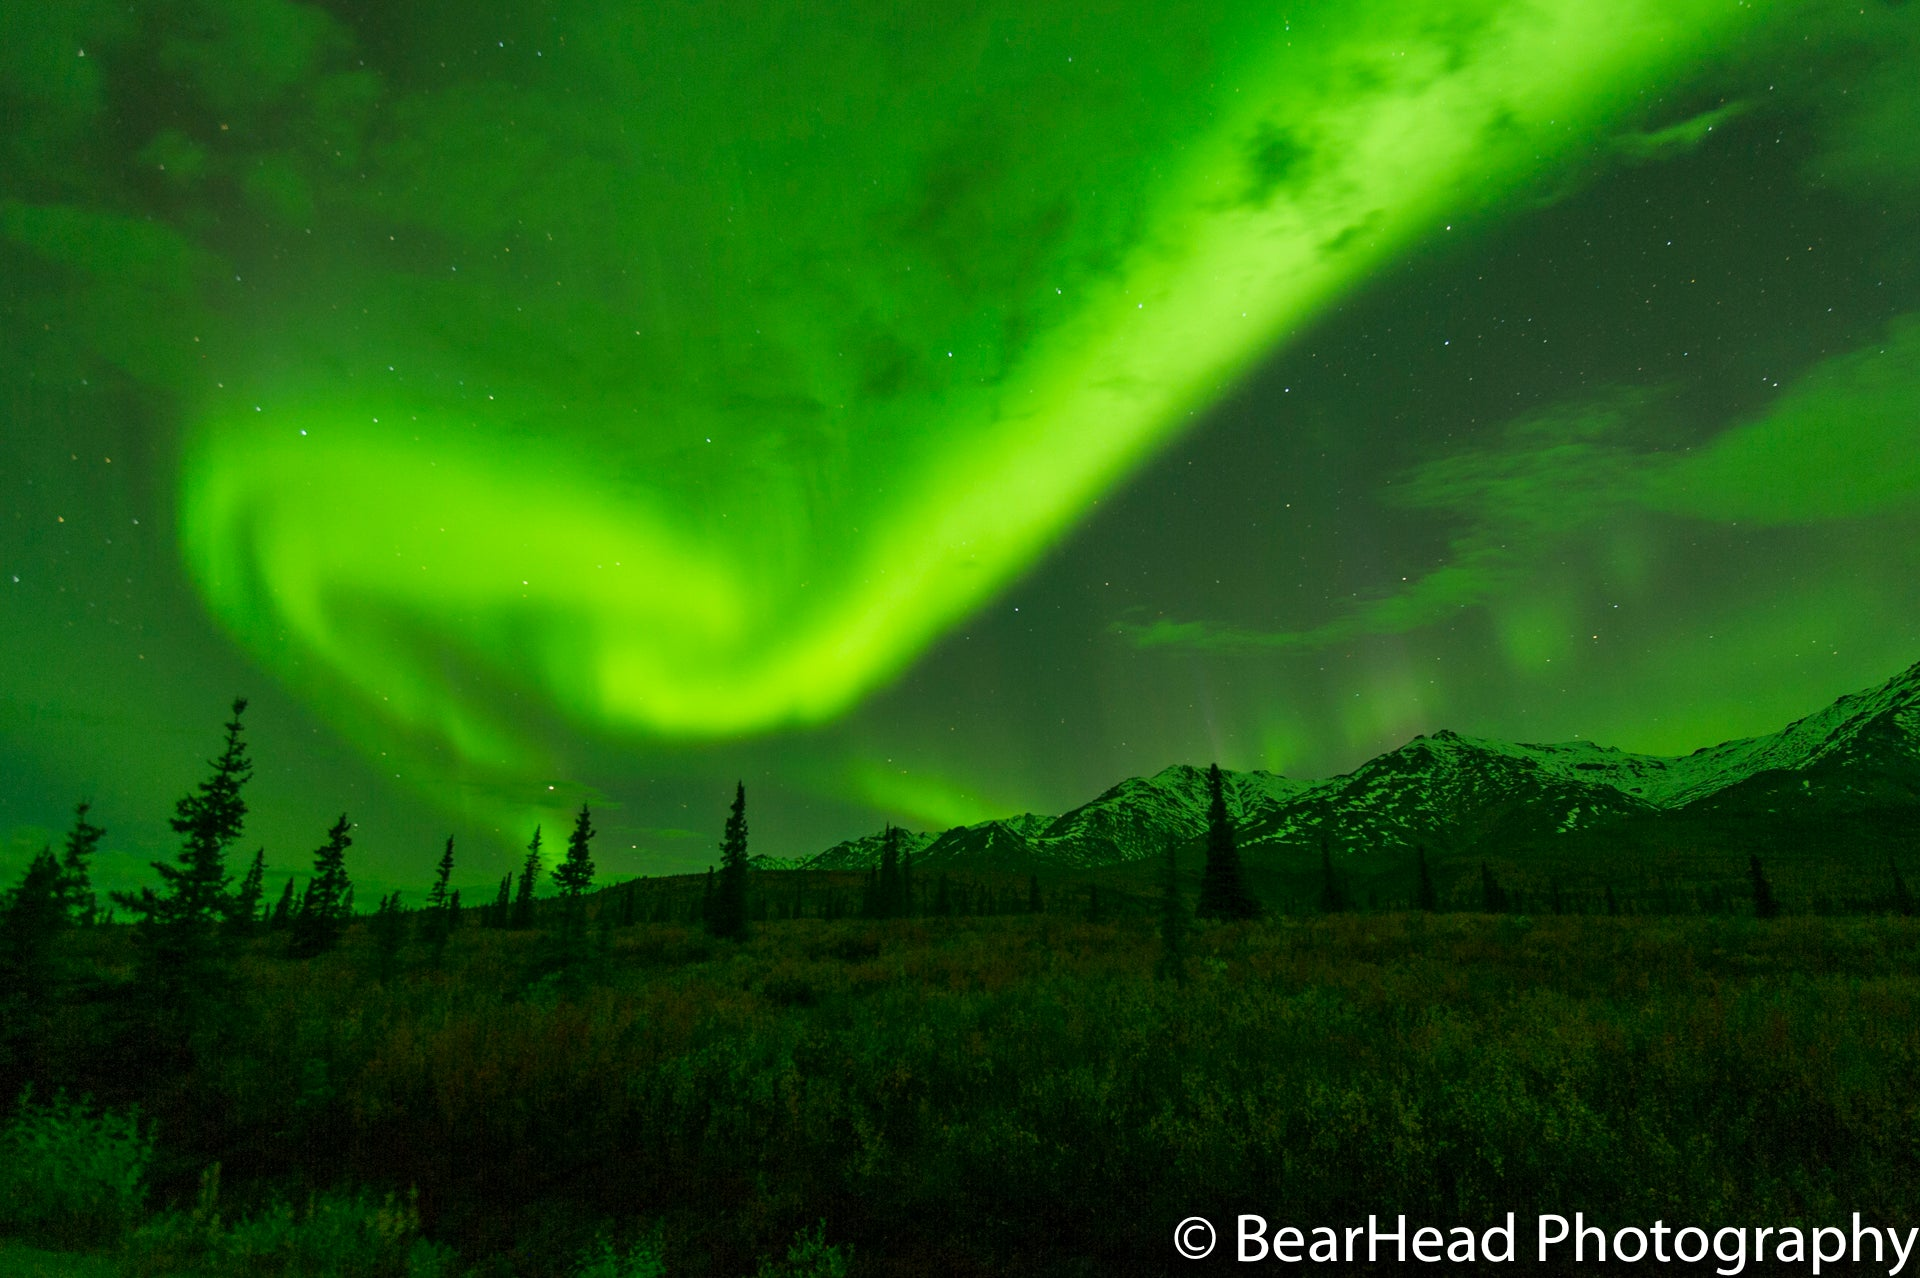 Photograph of the northern lights by Bearhead Studios in Skagway, Alaska